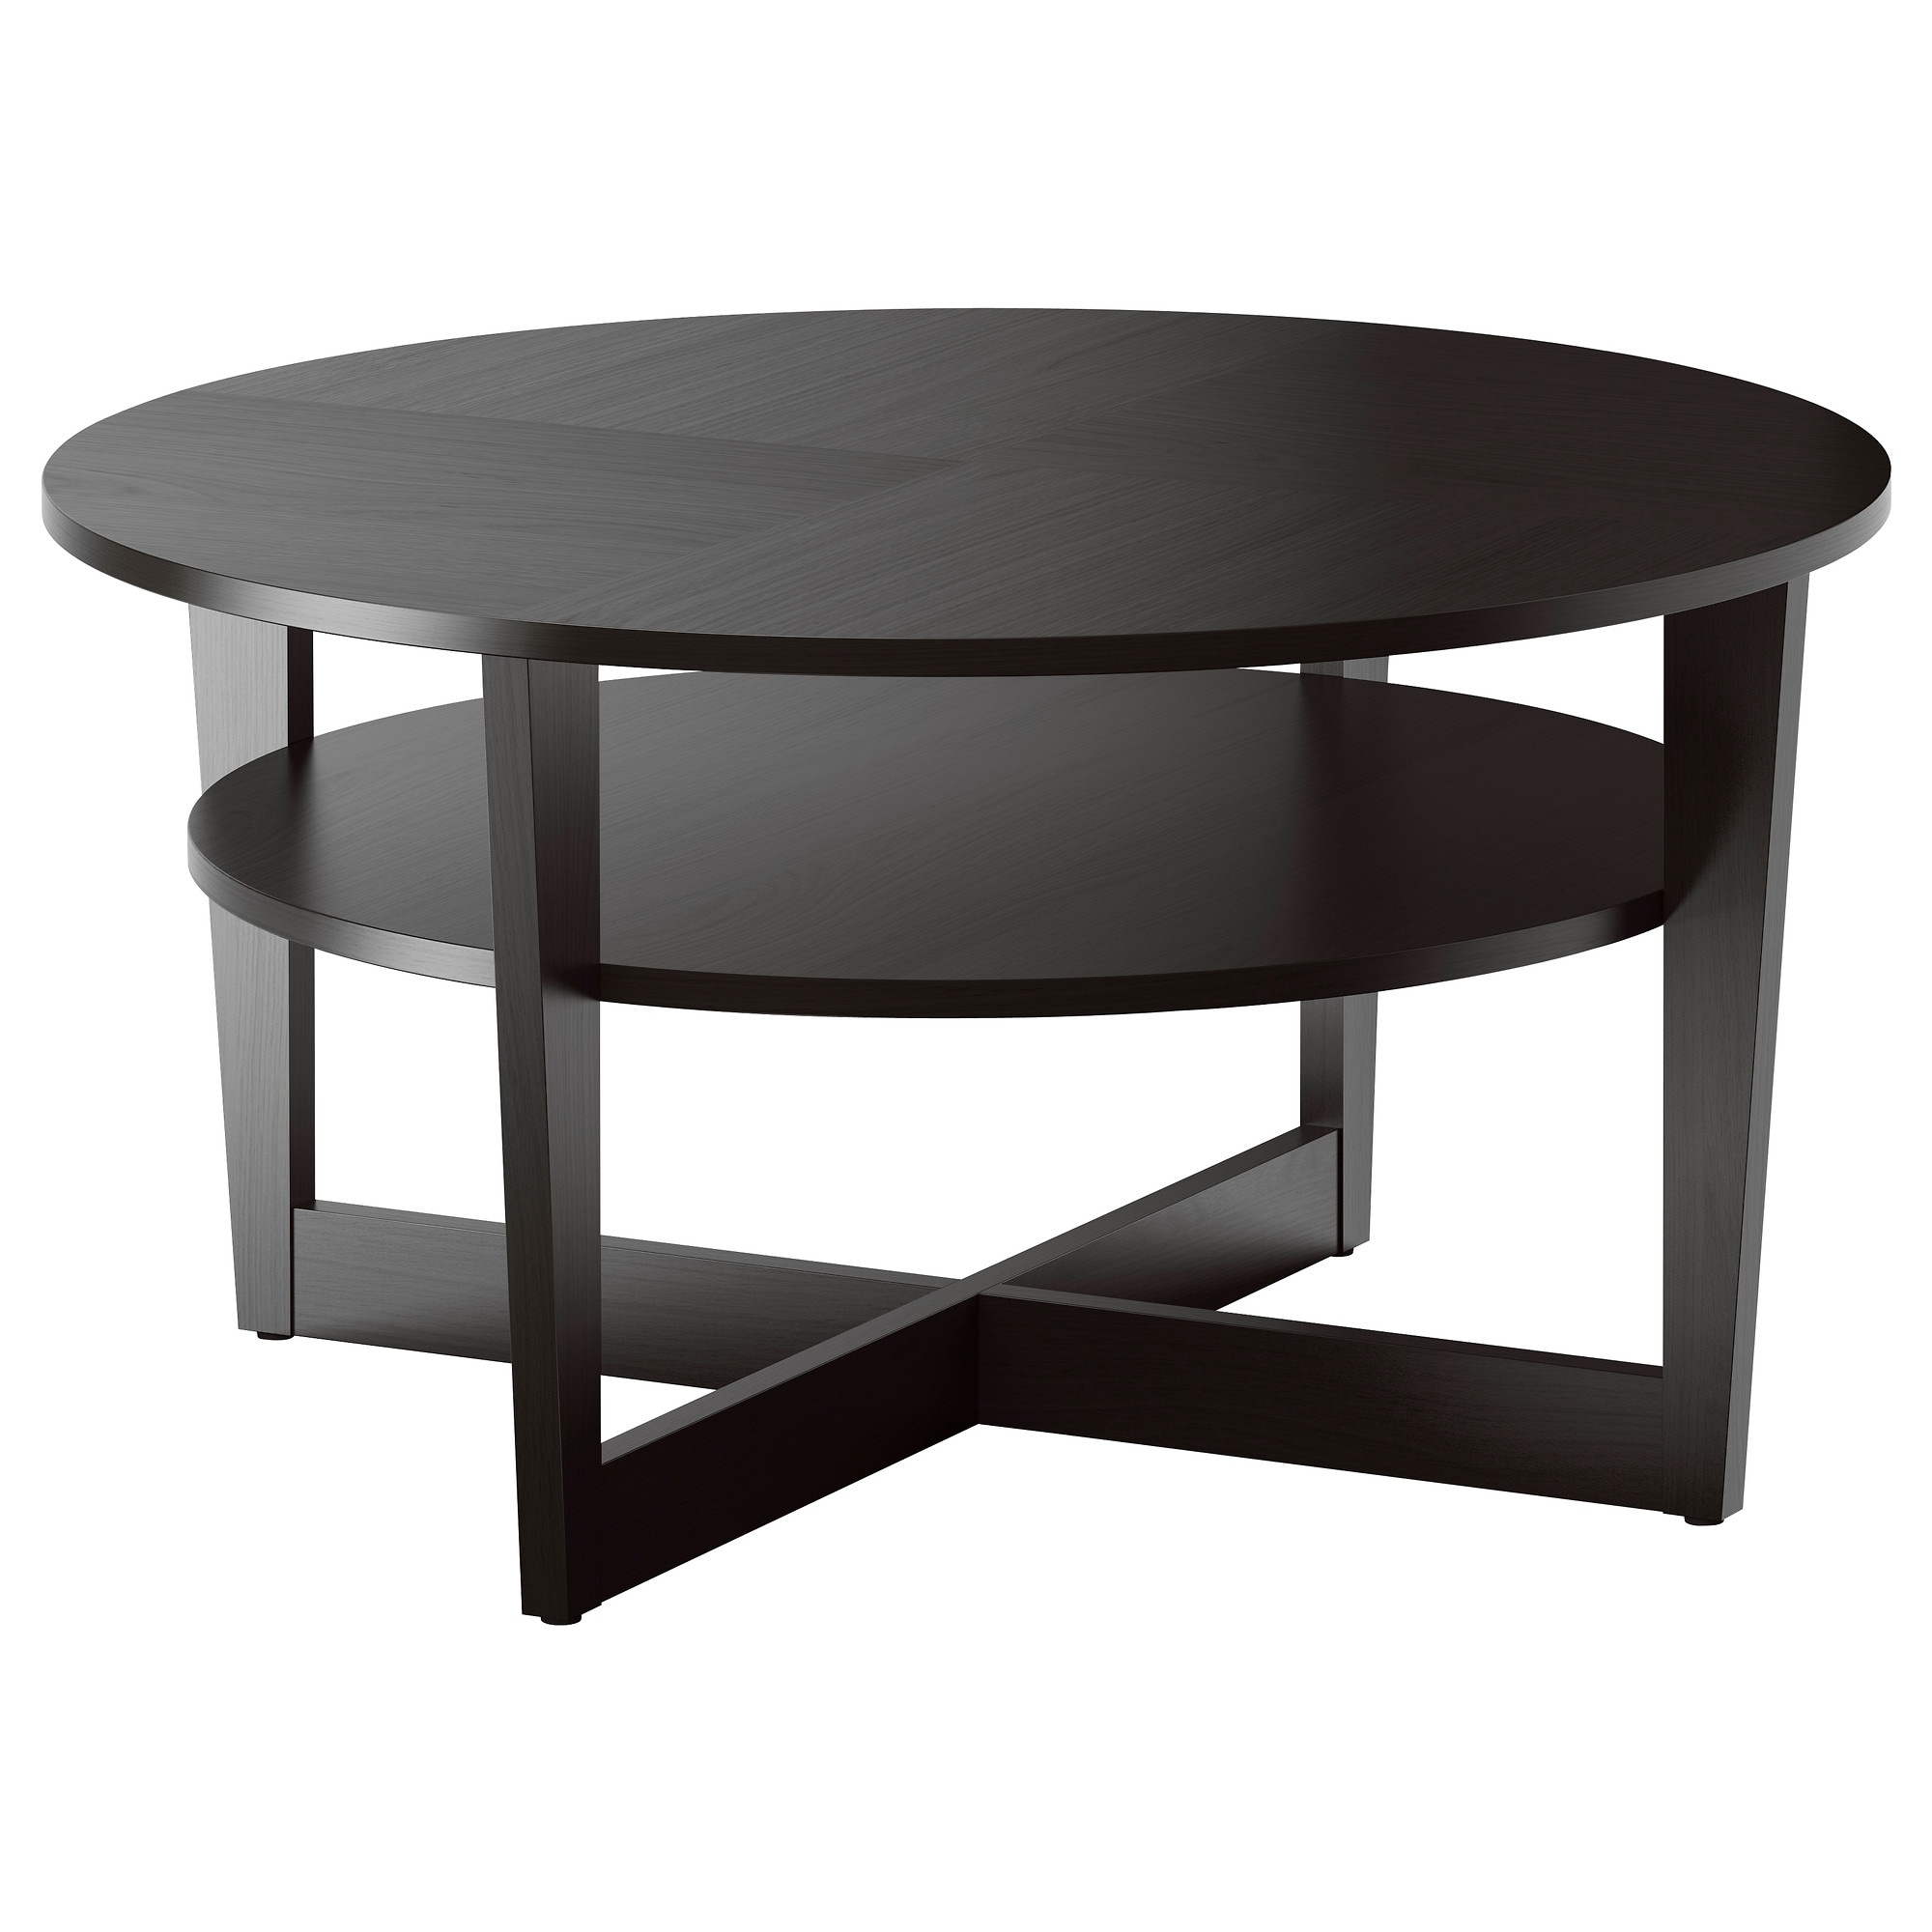 VEJMON Coffee table - black-brown - IKEA